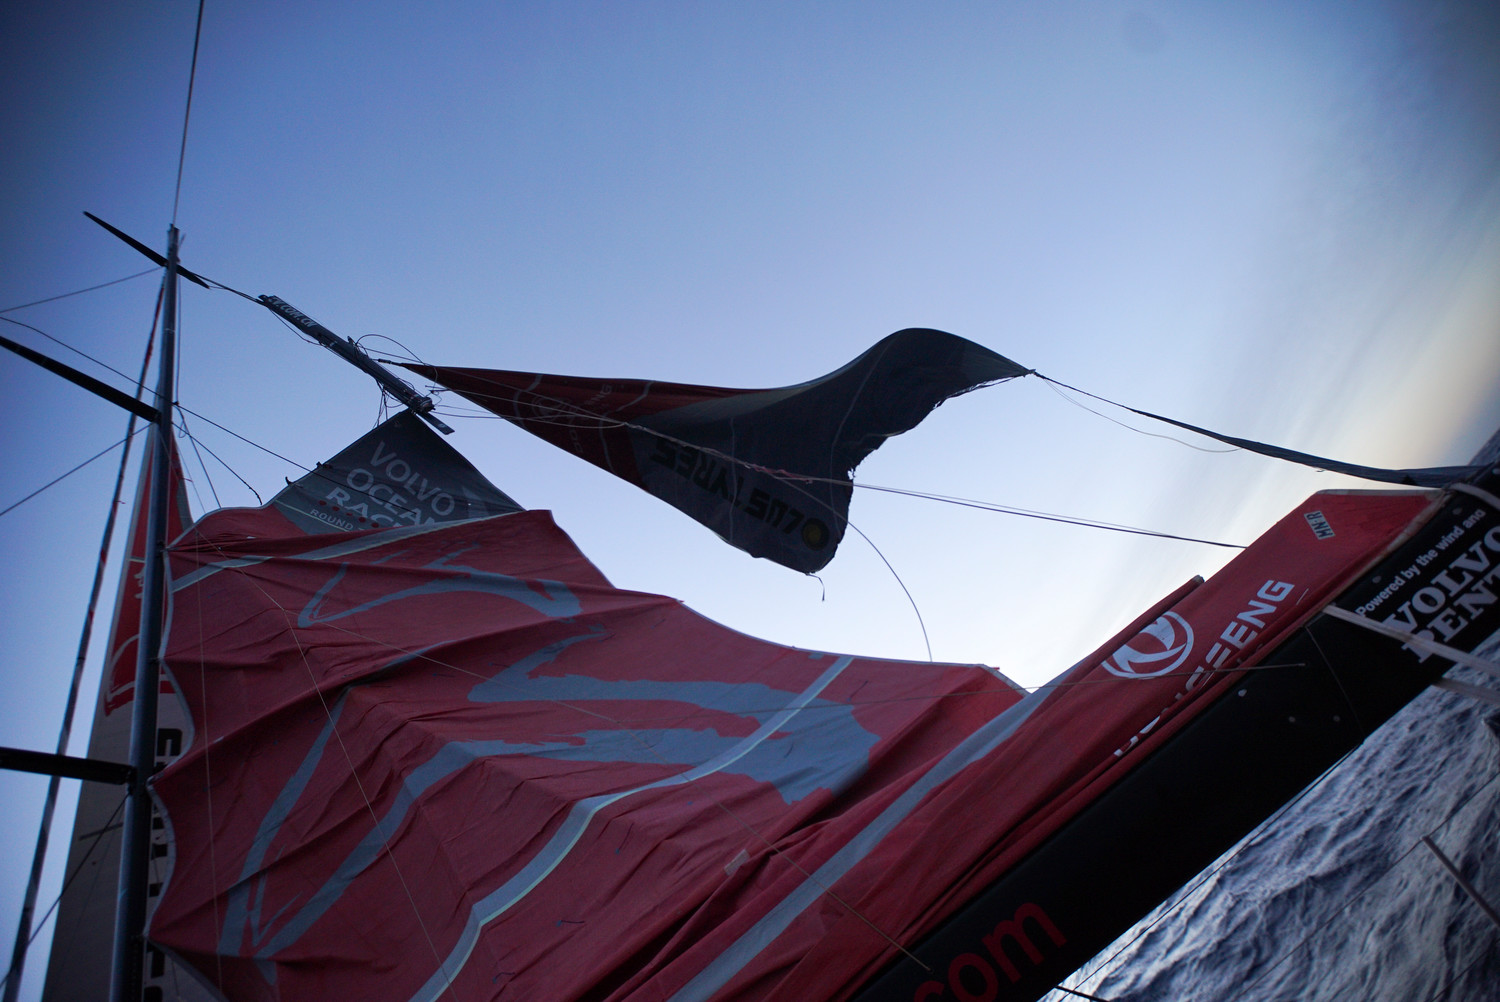 March 30, 2015. Leg 5 to Itajai onboard Dongfeng Race Team. Day 12. Dongfeng Race Team's mast broke above the third spreader - the top section of the mast - 240 nautical miles west of Cape Horn at 0315 UTC on Monday, in the final hours of the night. Fortunately nobody has been injured and there is no immediate danger to the crew.  Yann Riou / Dongfeng Race Team / Volvo Ocean Race